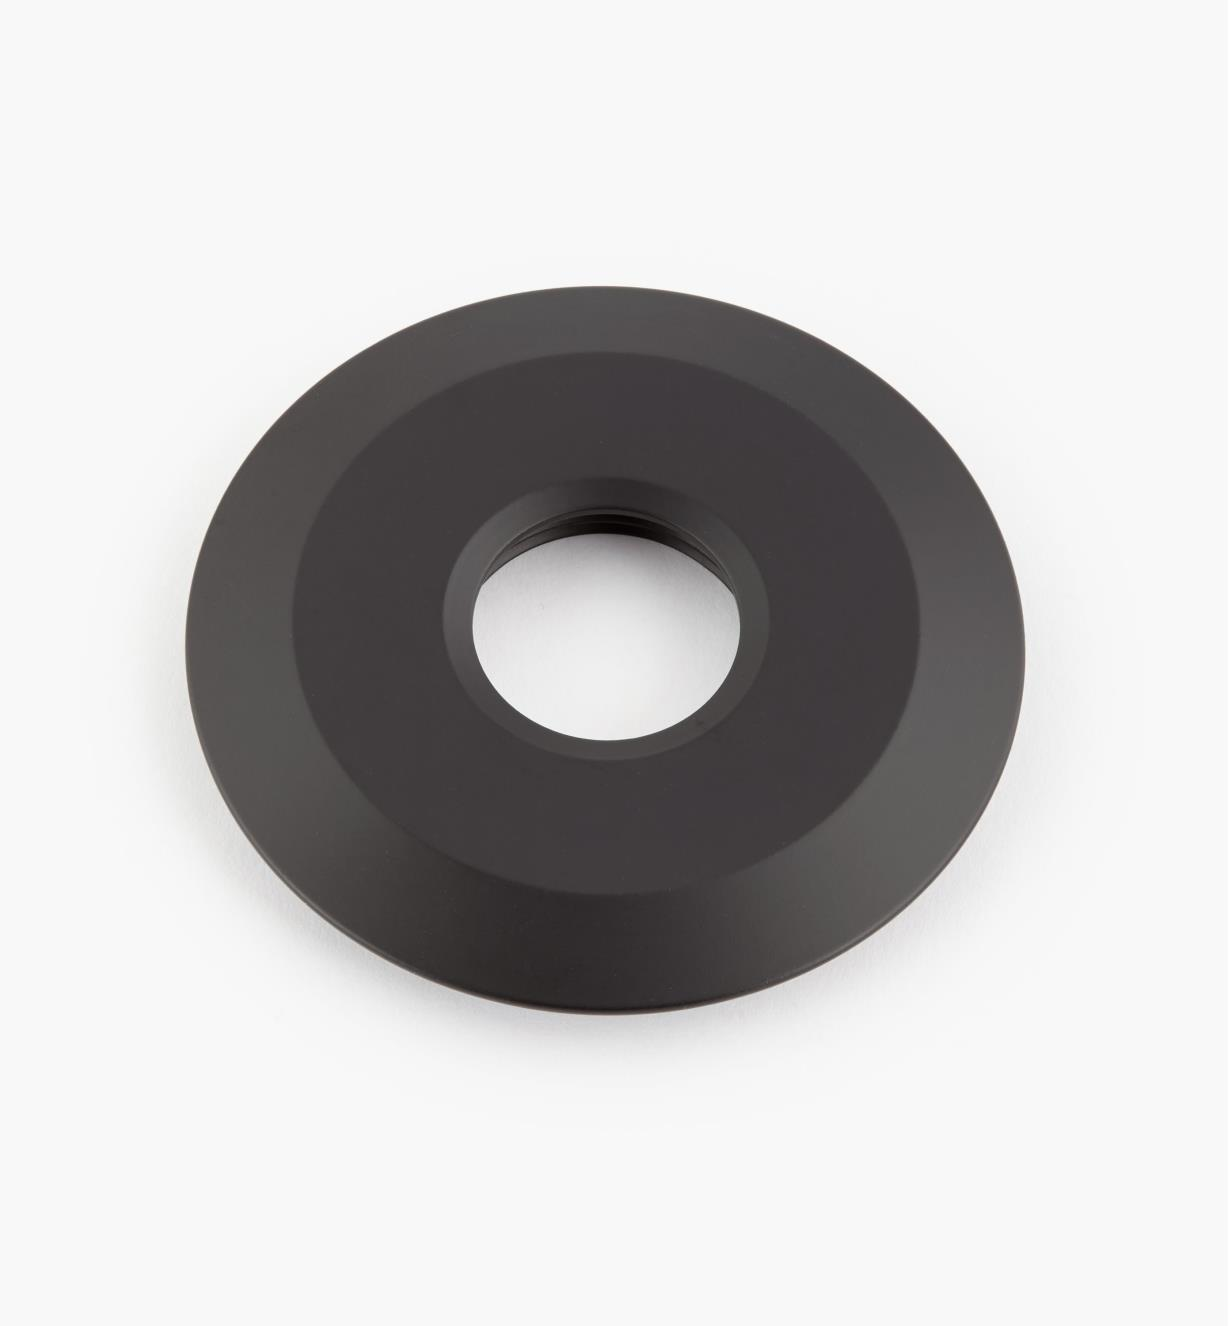 "00U4361 - 2 3/4"" Black Round Aluminum Trim Ring"